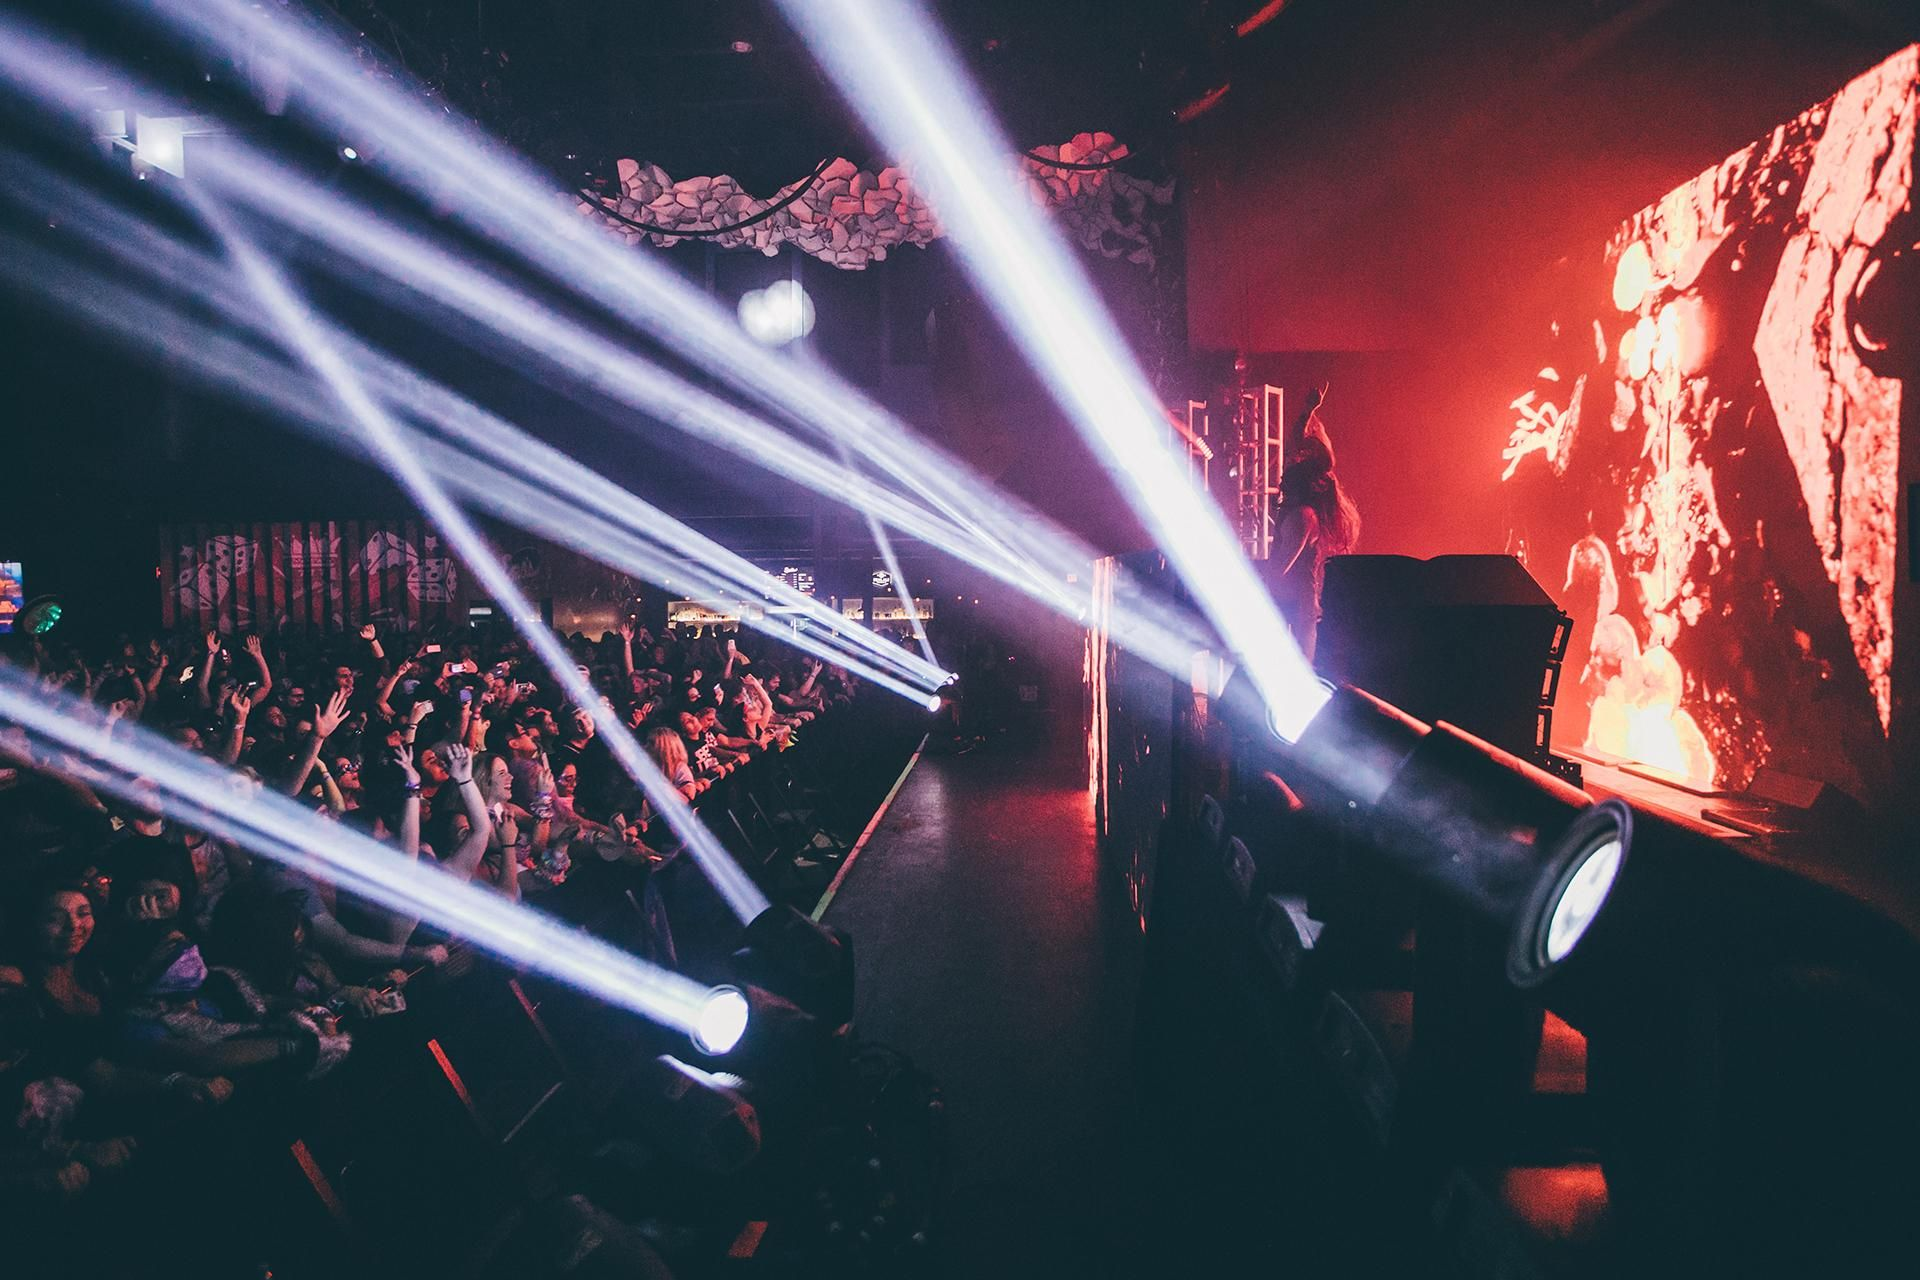 SEVENLIONS-EMOS-11.29.18-Resized.jpg